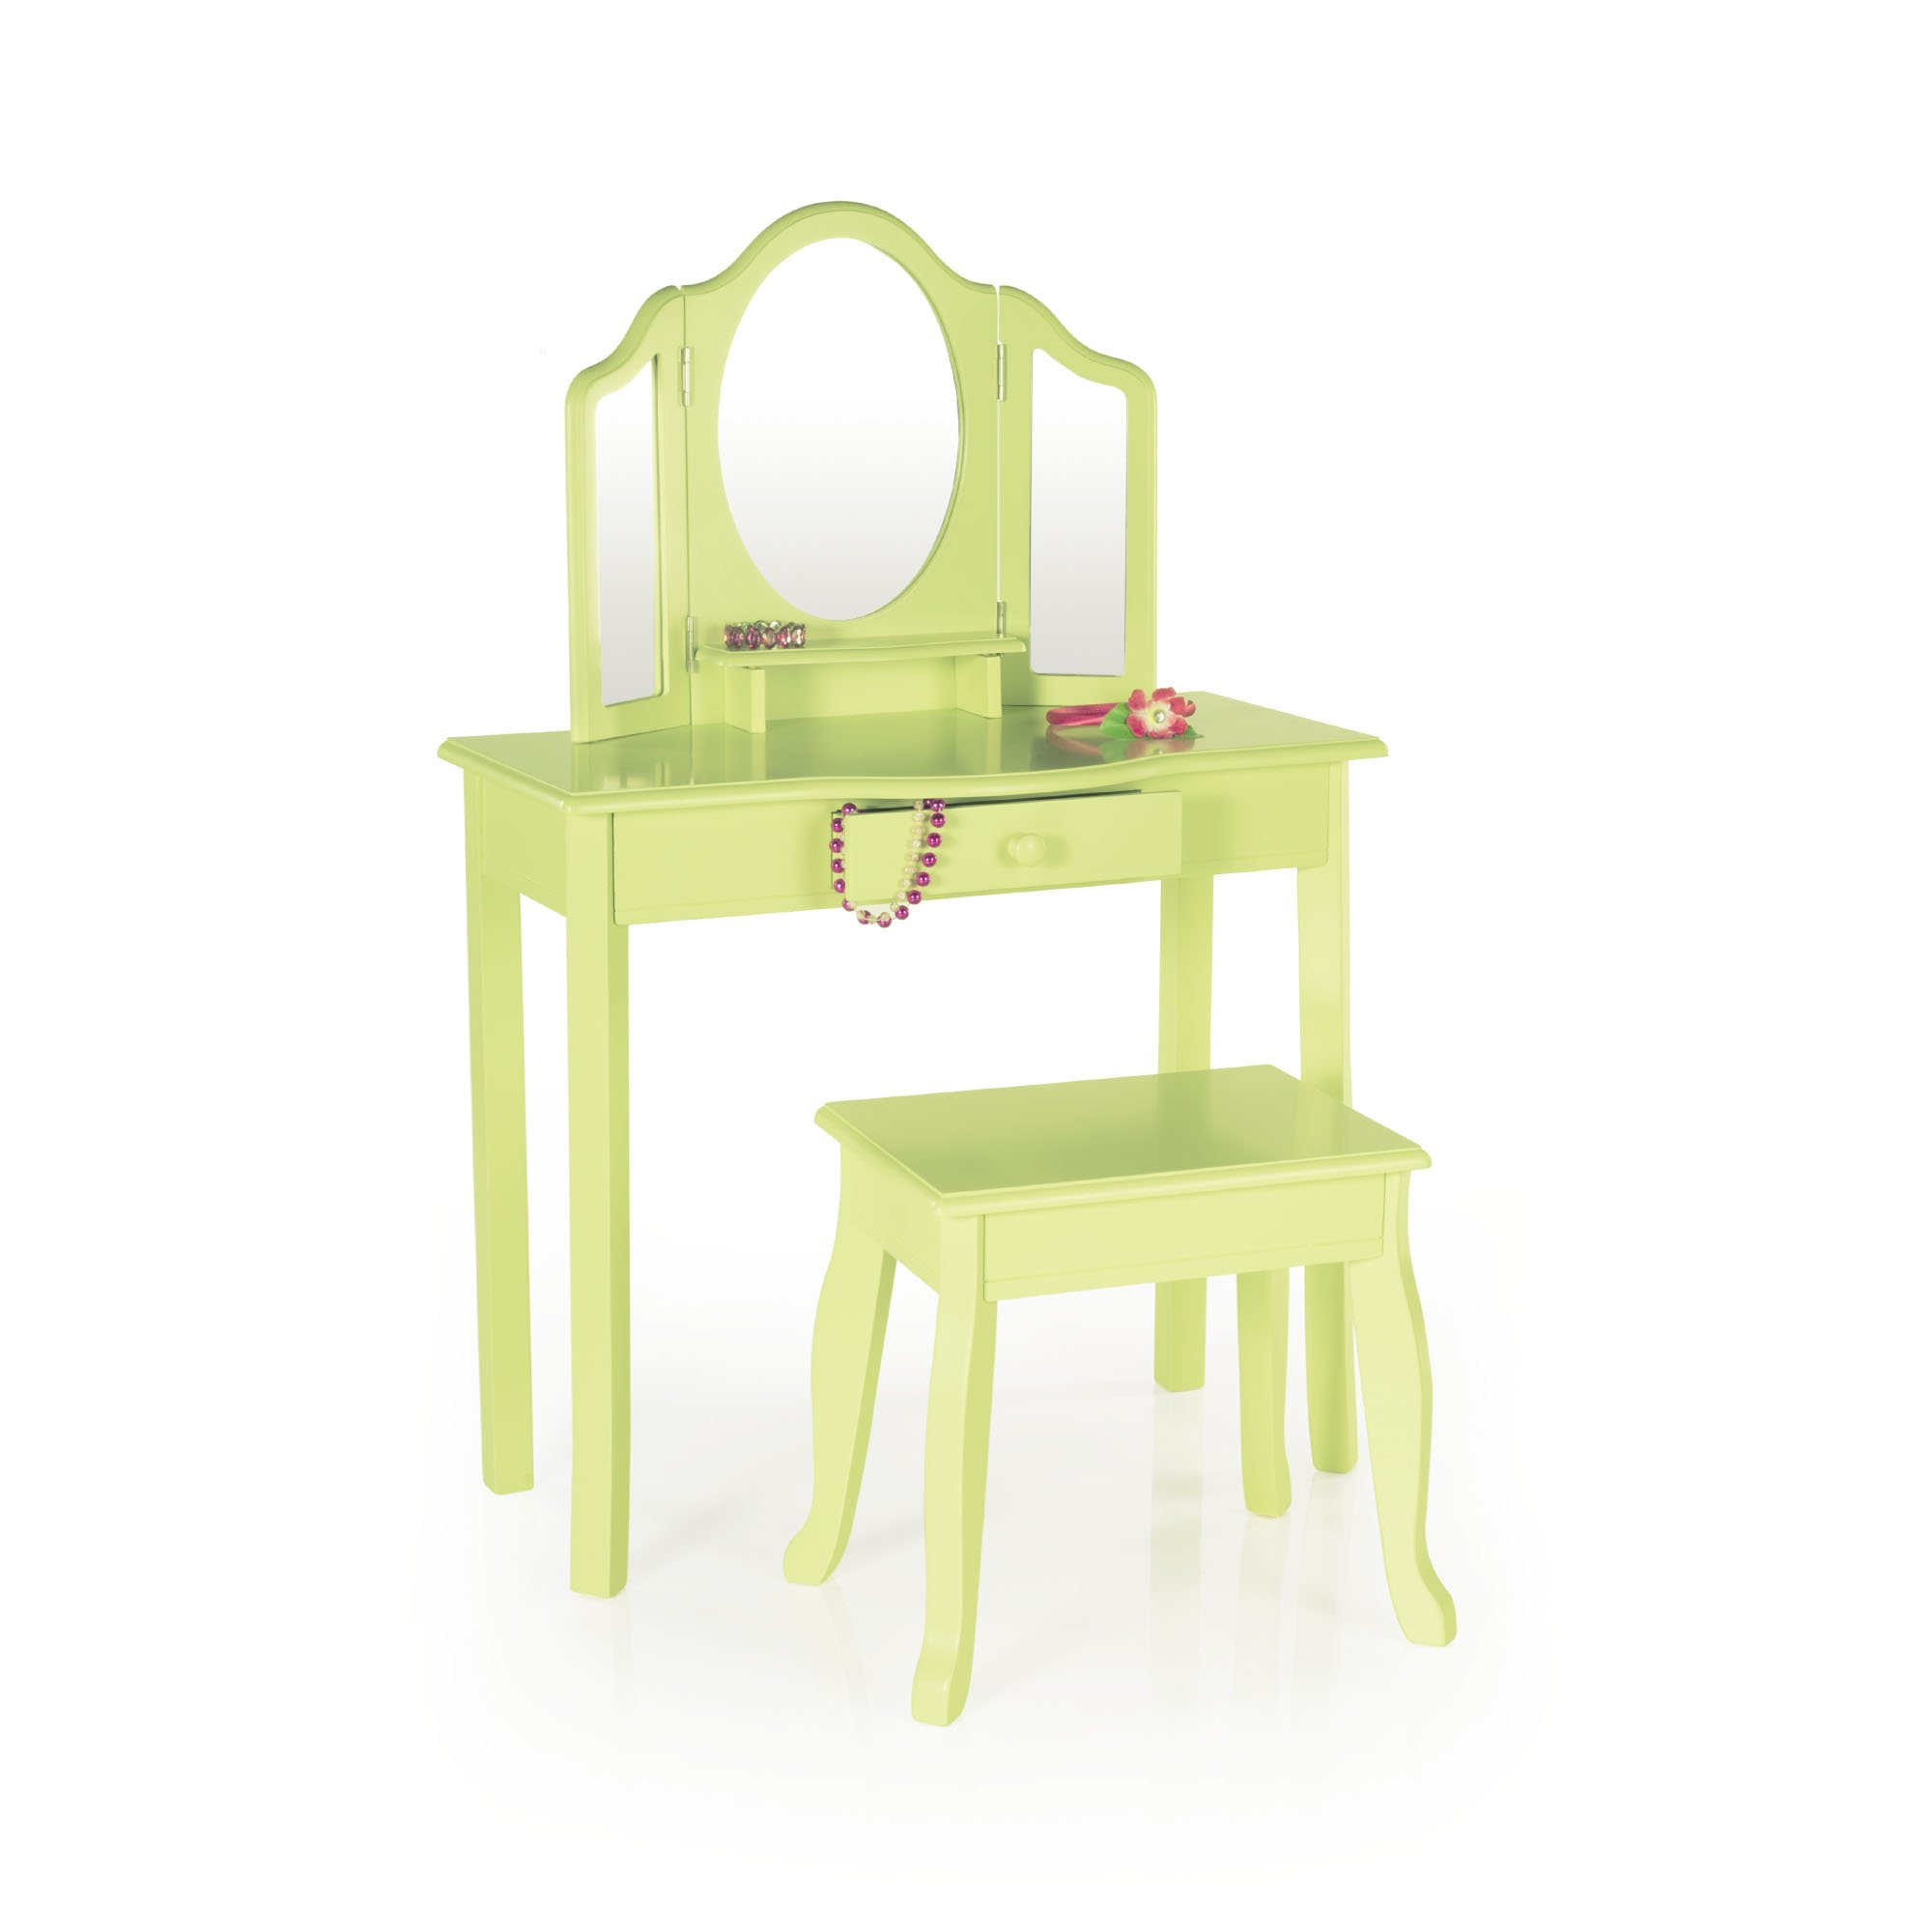 Guidecraft Vanity Table and Stool Set with Mirror and Make-Up Drawer - Children's Furniture - Light Green